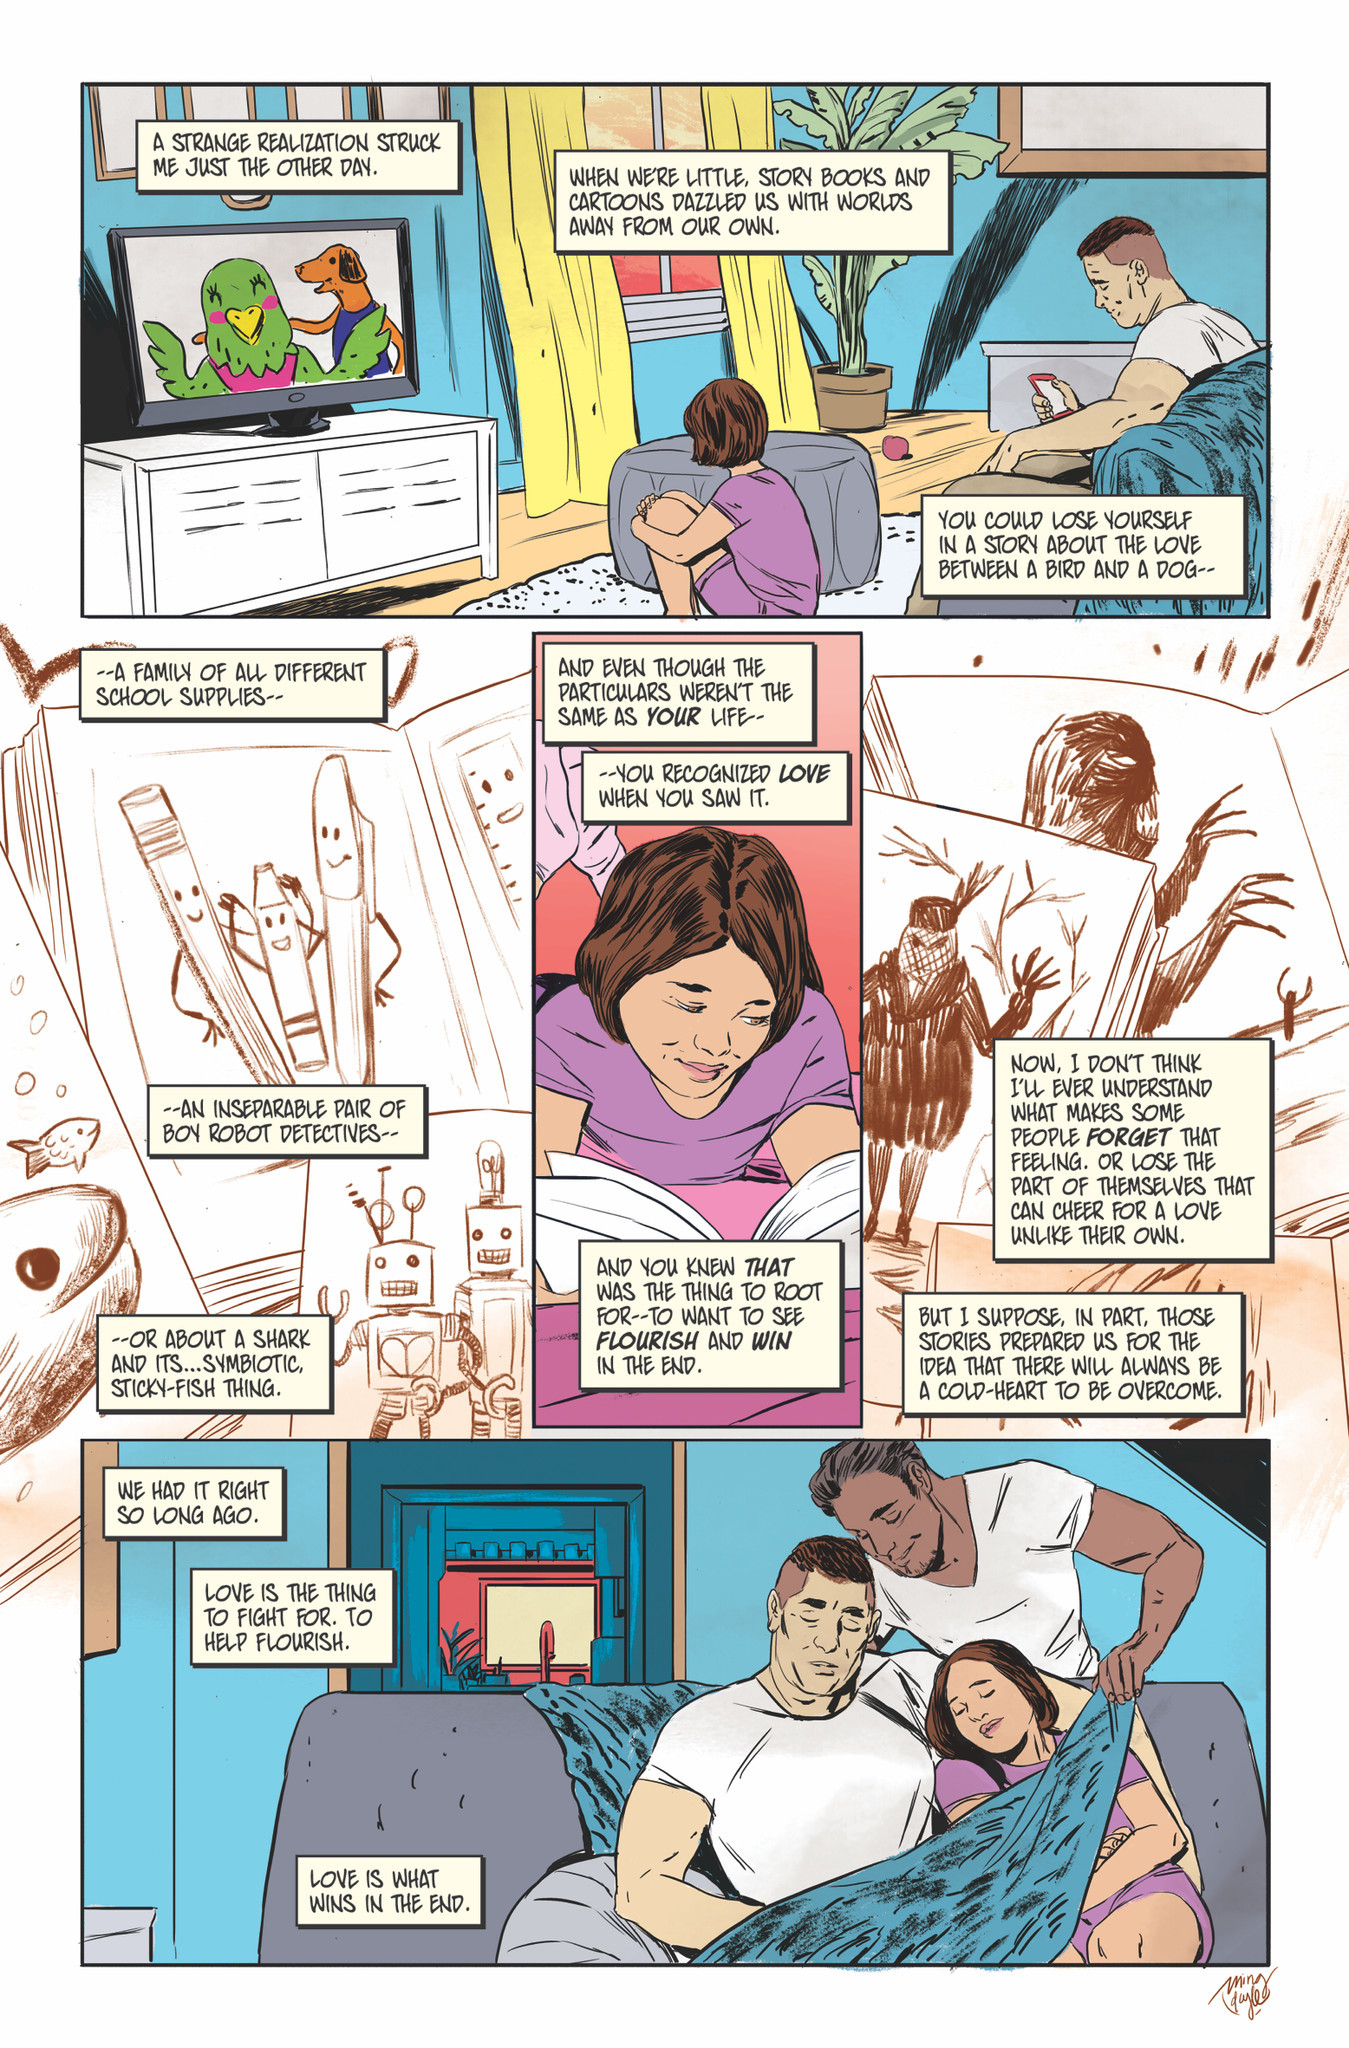 A page from